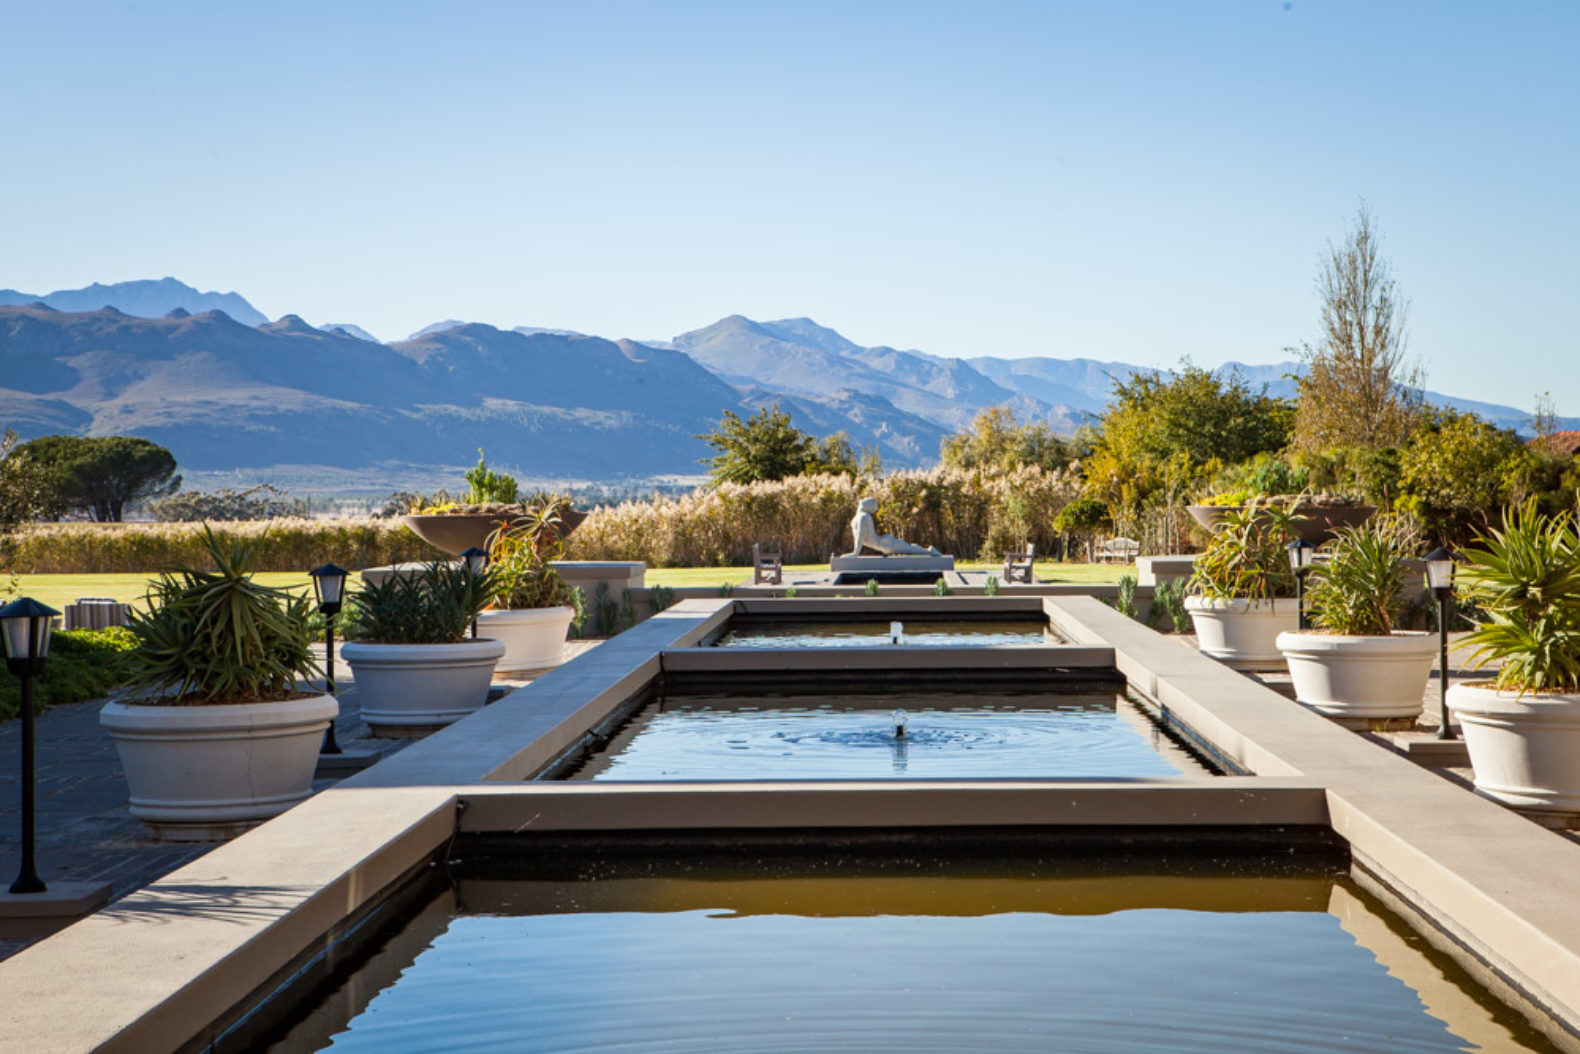 landscape-view-fountain-pond-statue-sante-wellness-retreat-spa-hotel-southafrica